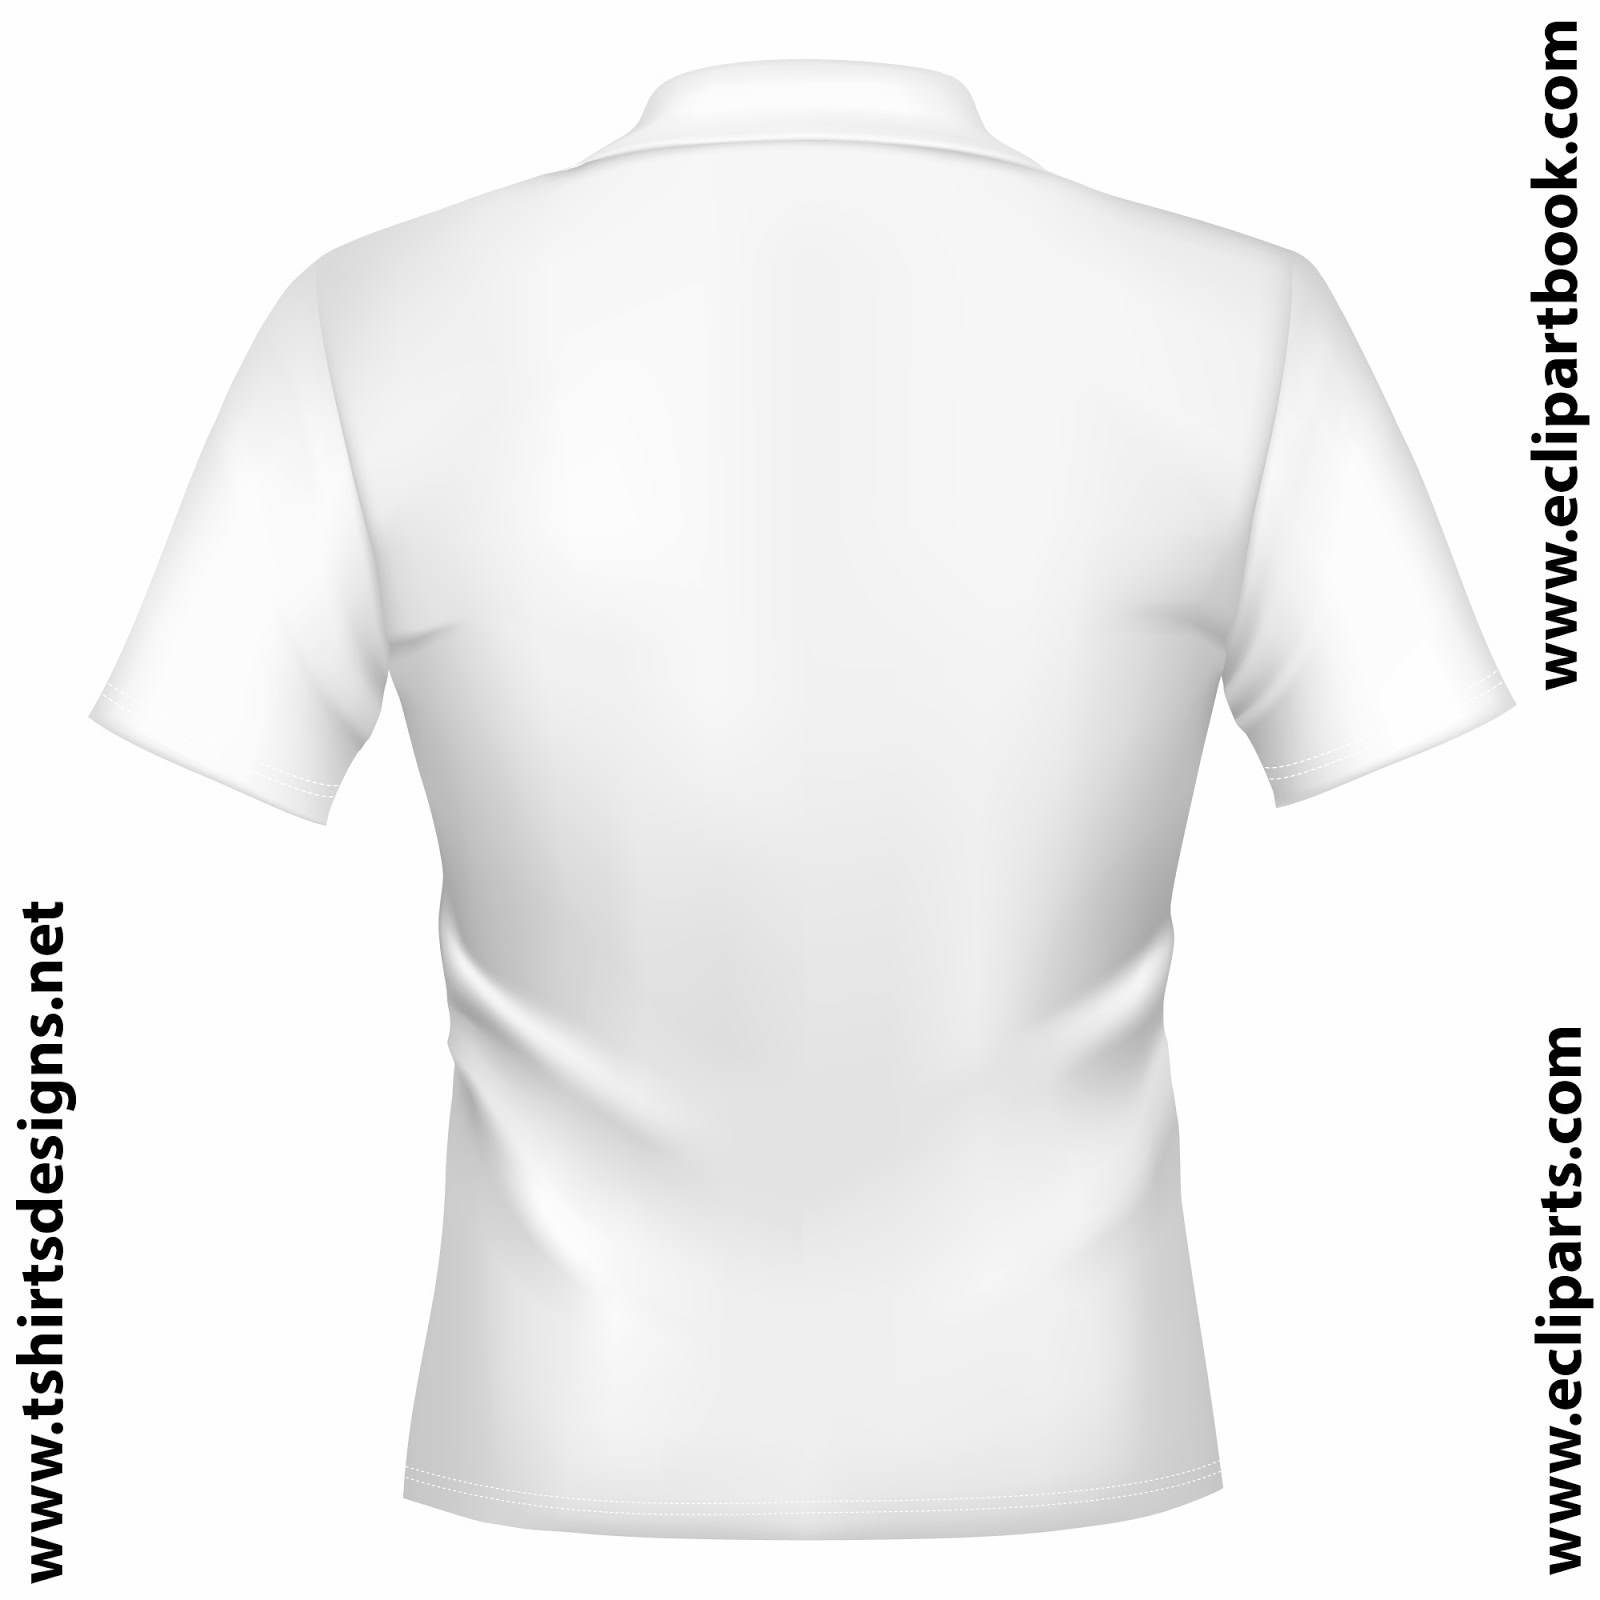 Plain White Polo Shirt Front And Back